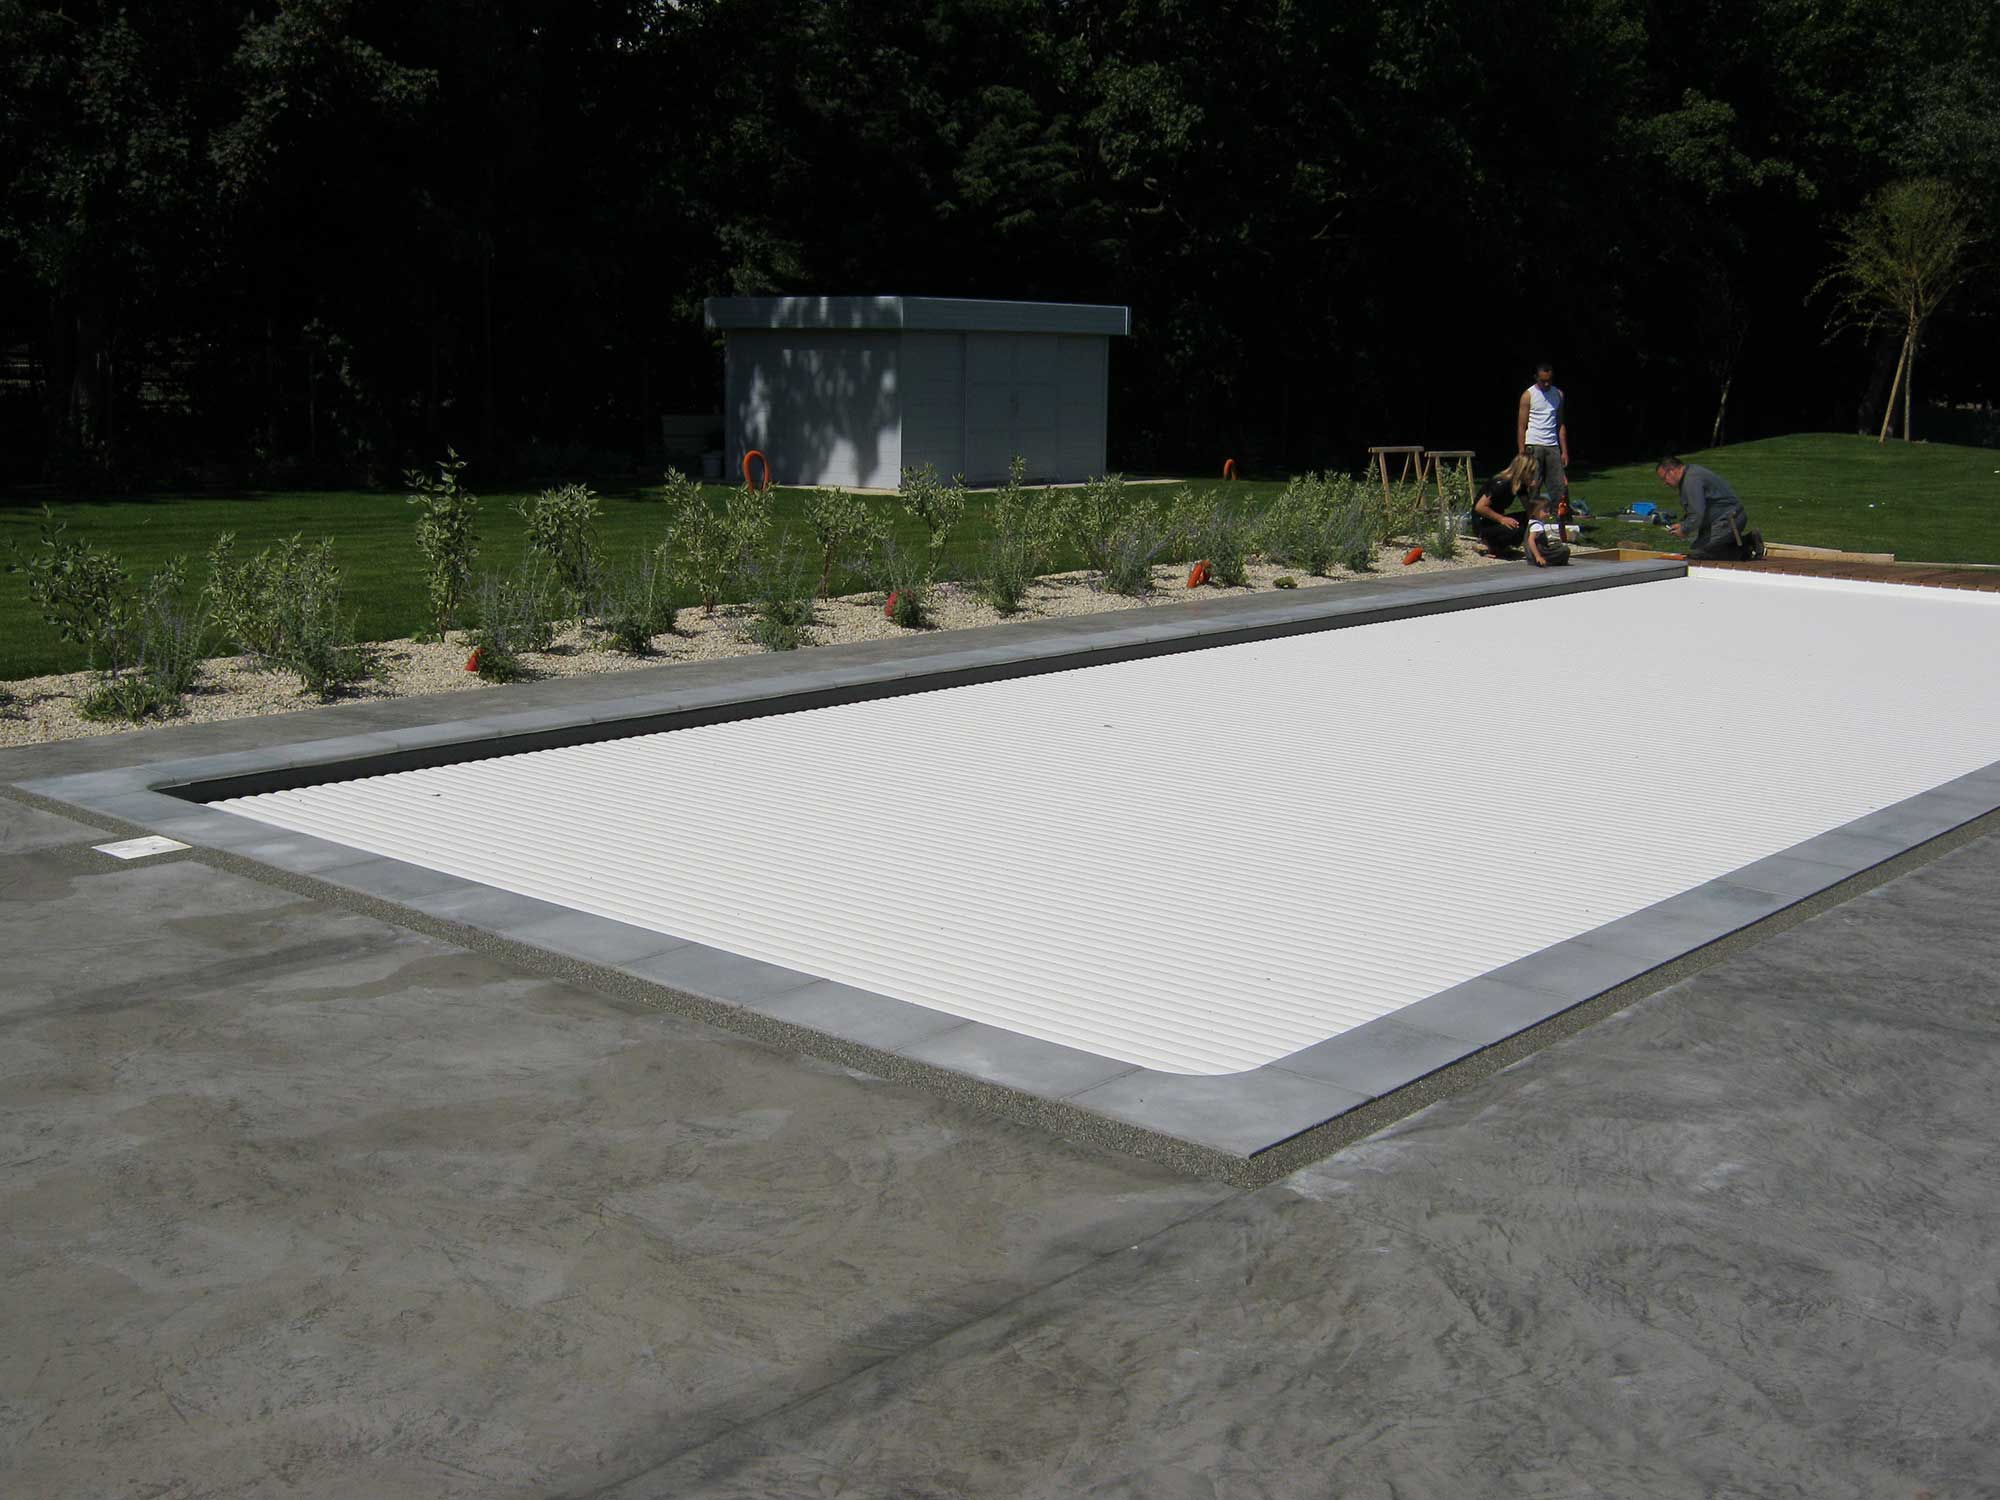 Construire sa piscine en beton construction d 39 une for Construire sa piscine en kit